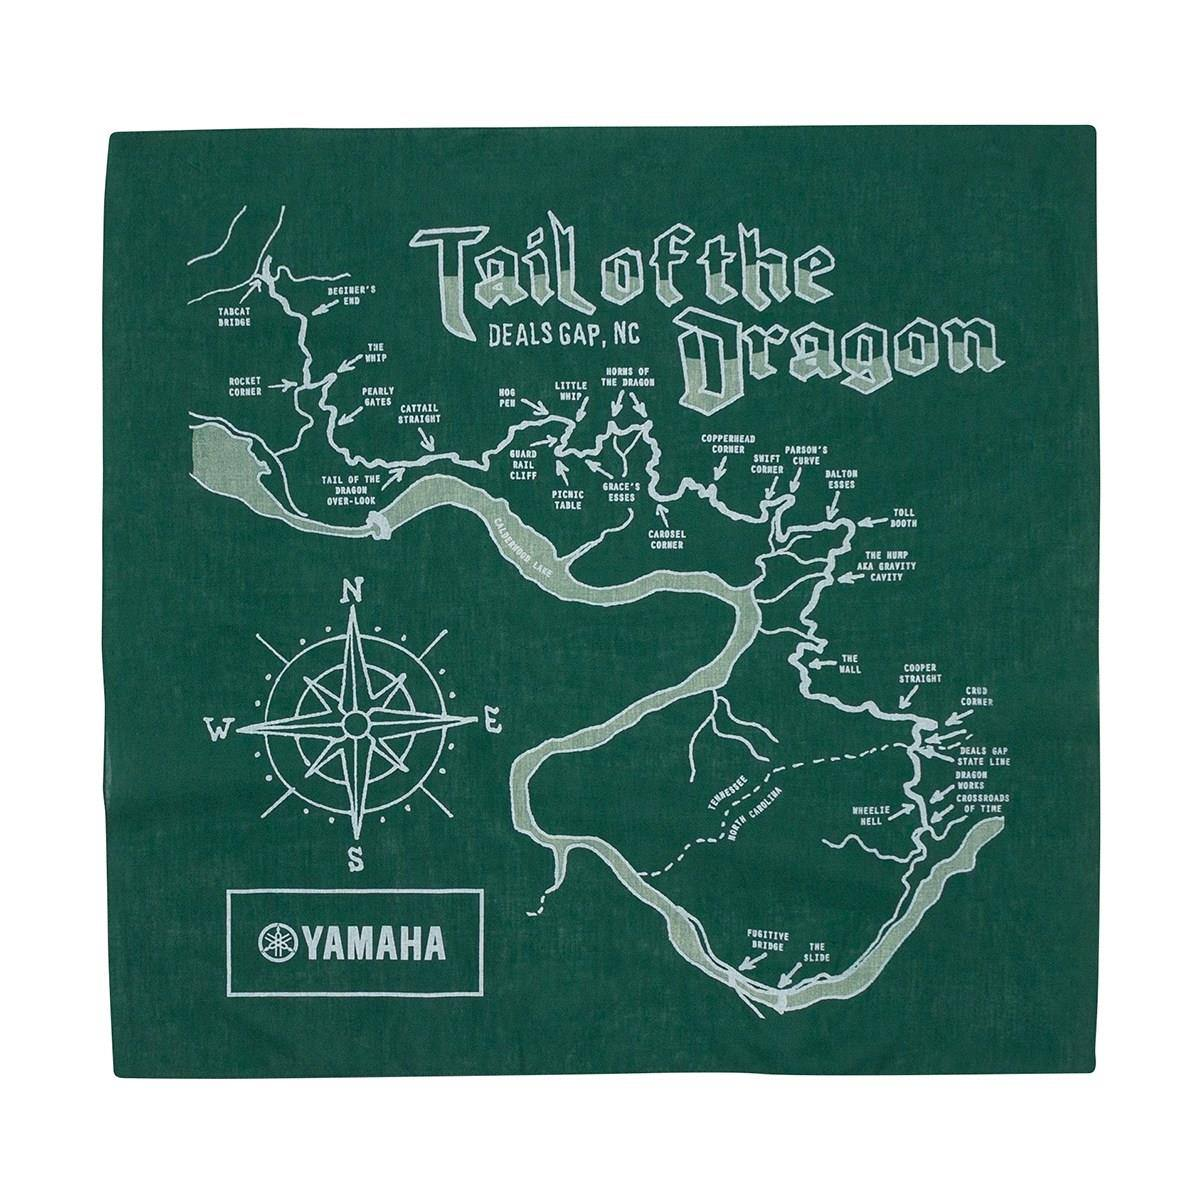 Us 129 Tail Of The Dragon Bandana For Sale In Newport News Va - Us-129-tail-of-the-dragon-map